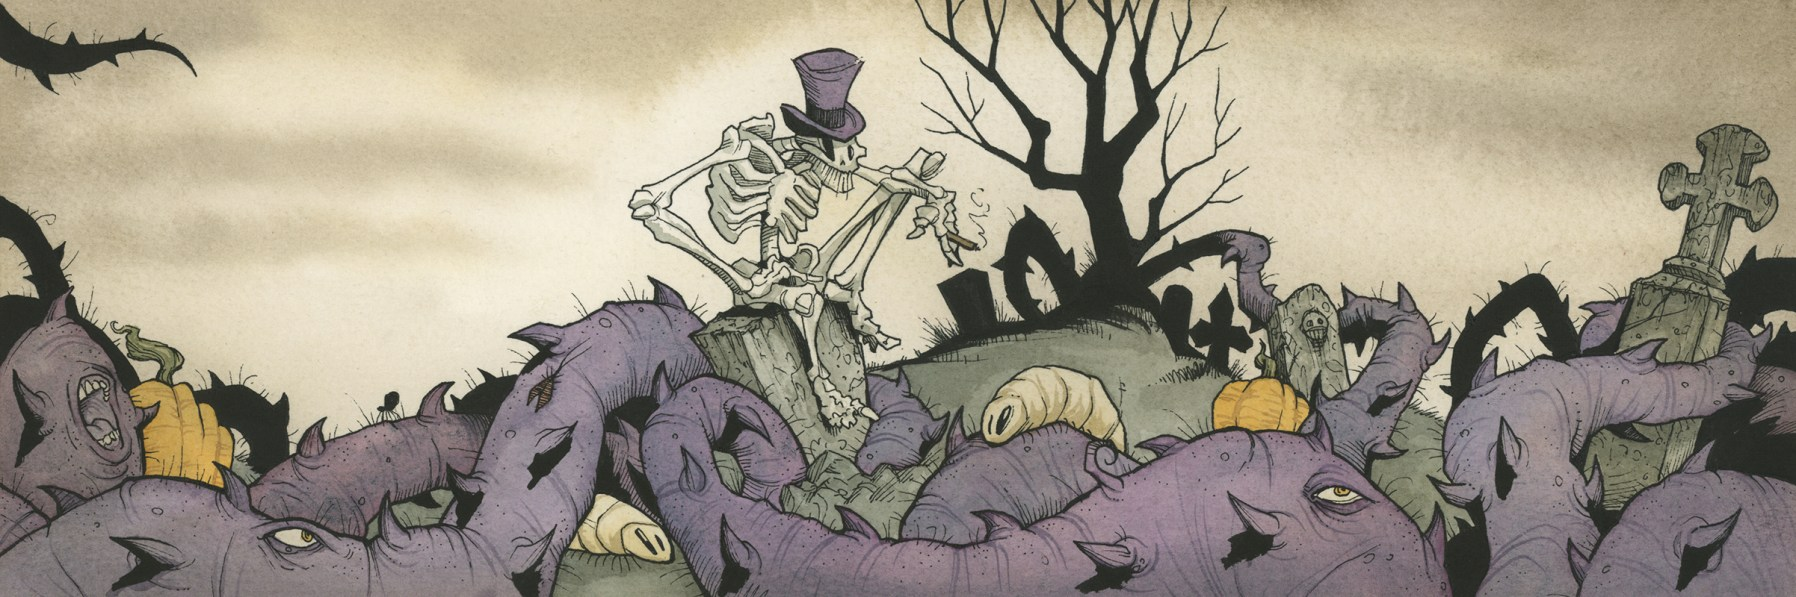 Mortimer Ashes to ashes gris grimly creature feature curtis rx greatest show unearthed skeleton